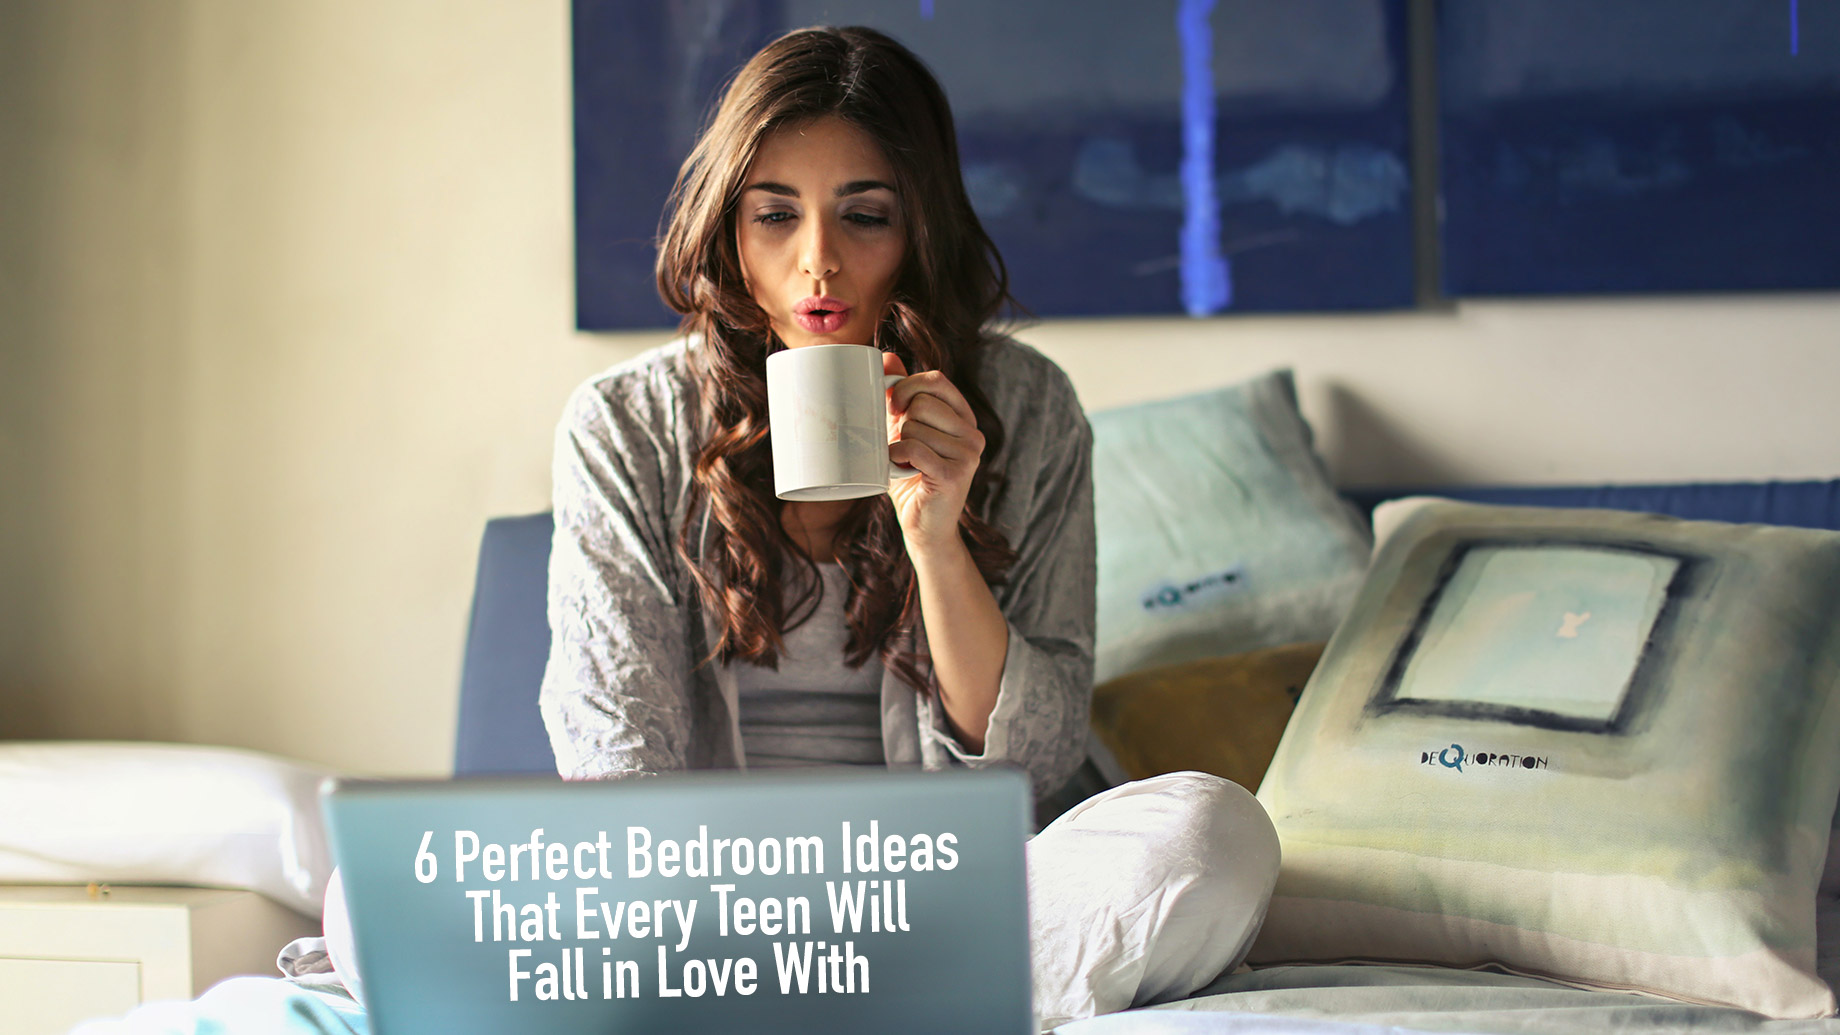 6 Perfect Bedroom Ideas That Every Teen Will Fall in Love With